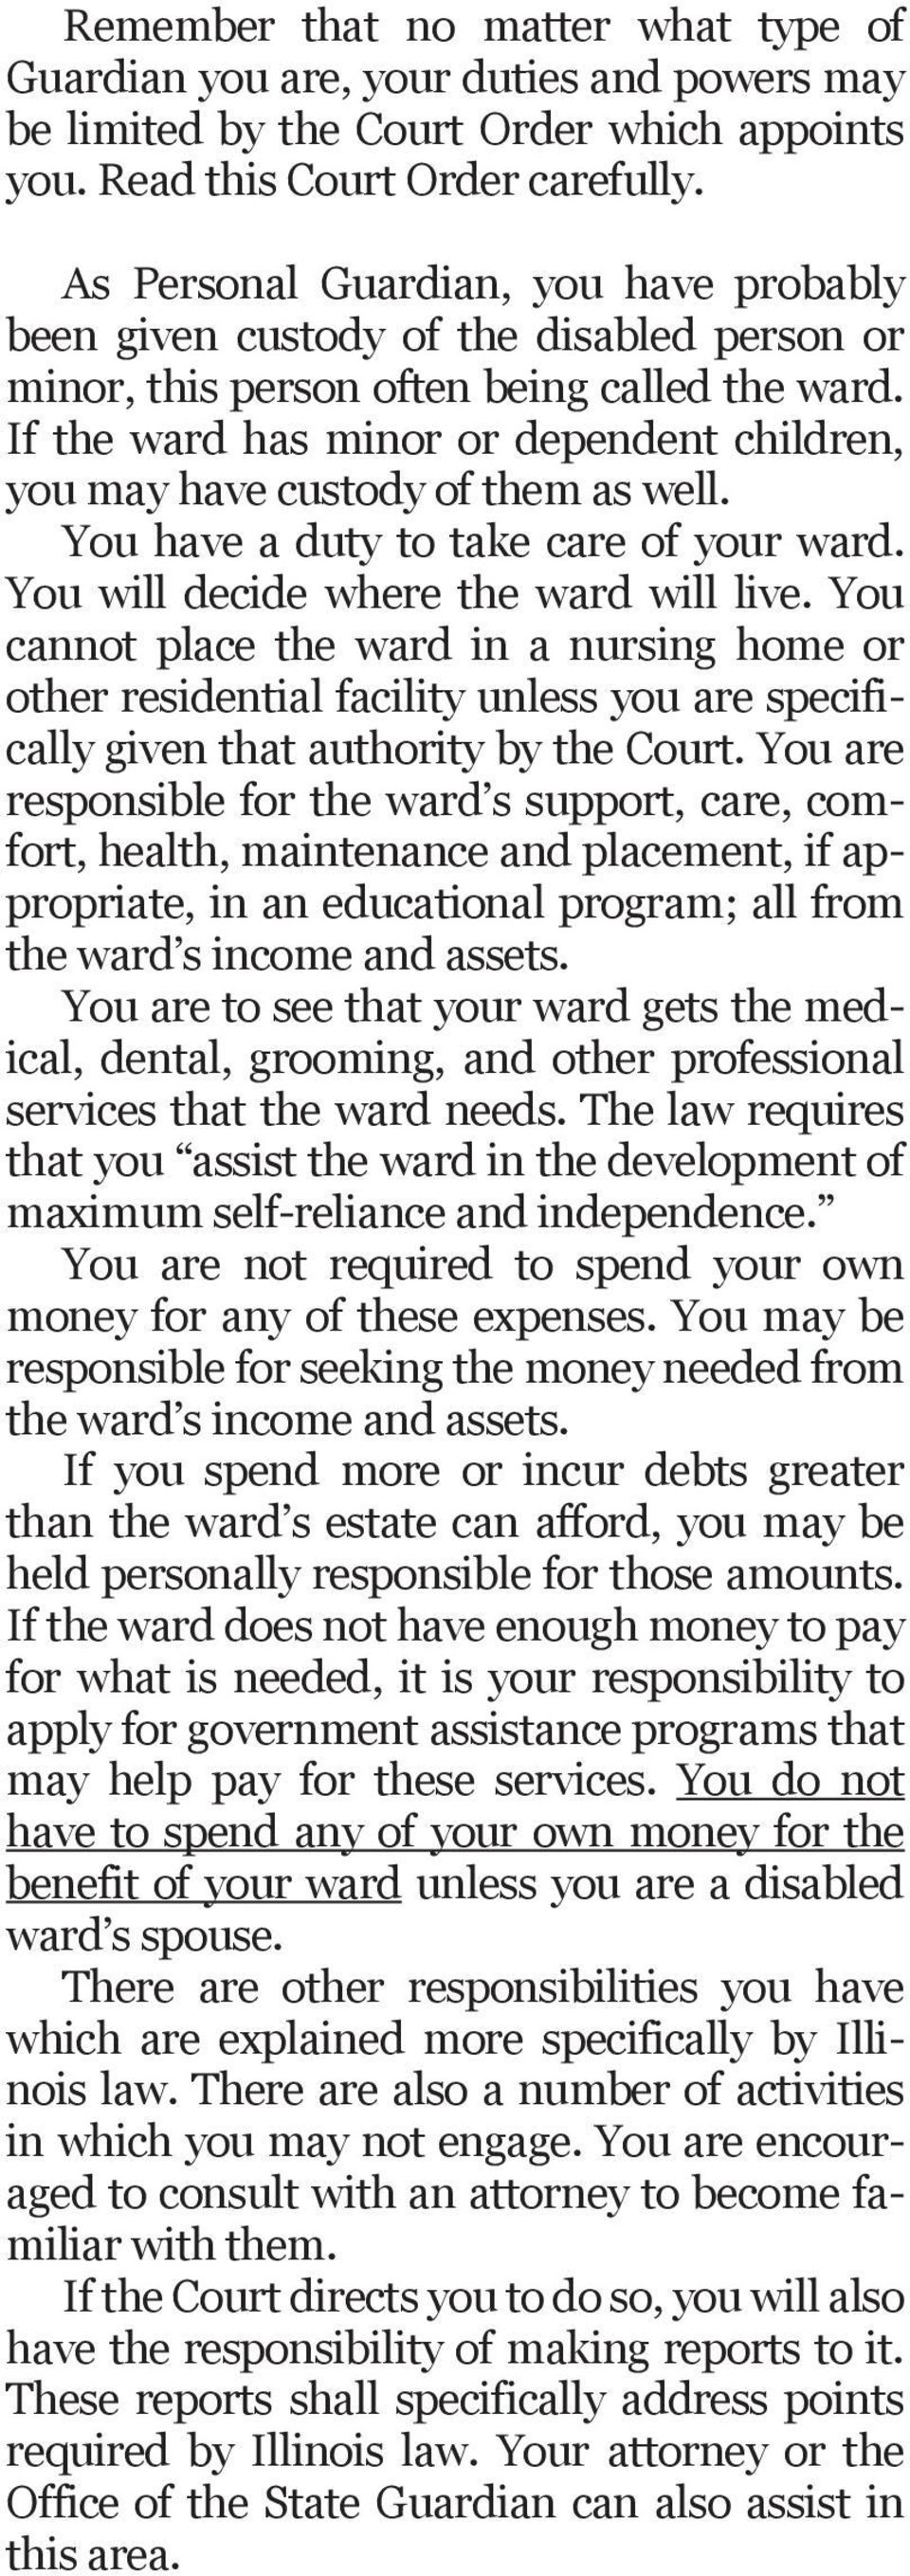 If the ward has minor or dependent children, you may have custody of them as well. You have a duty to take care of your ward. You will decide where the ward will live.